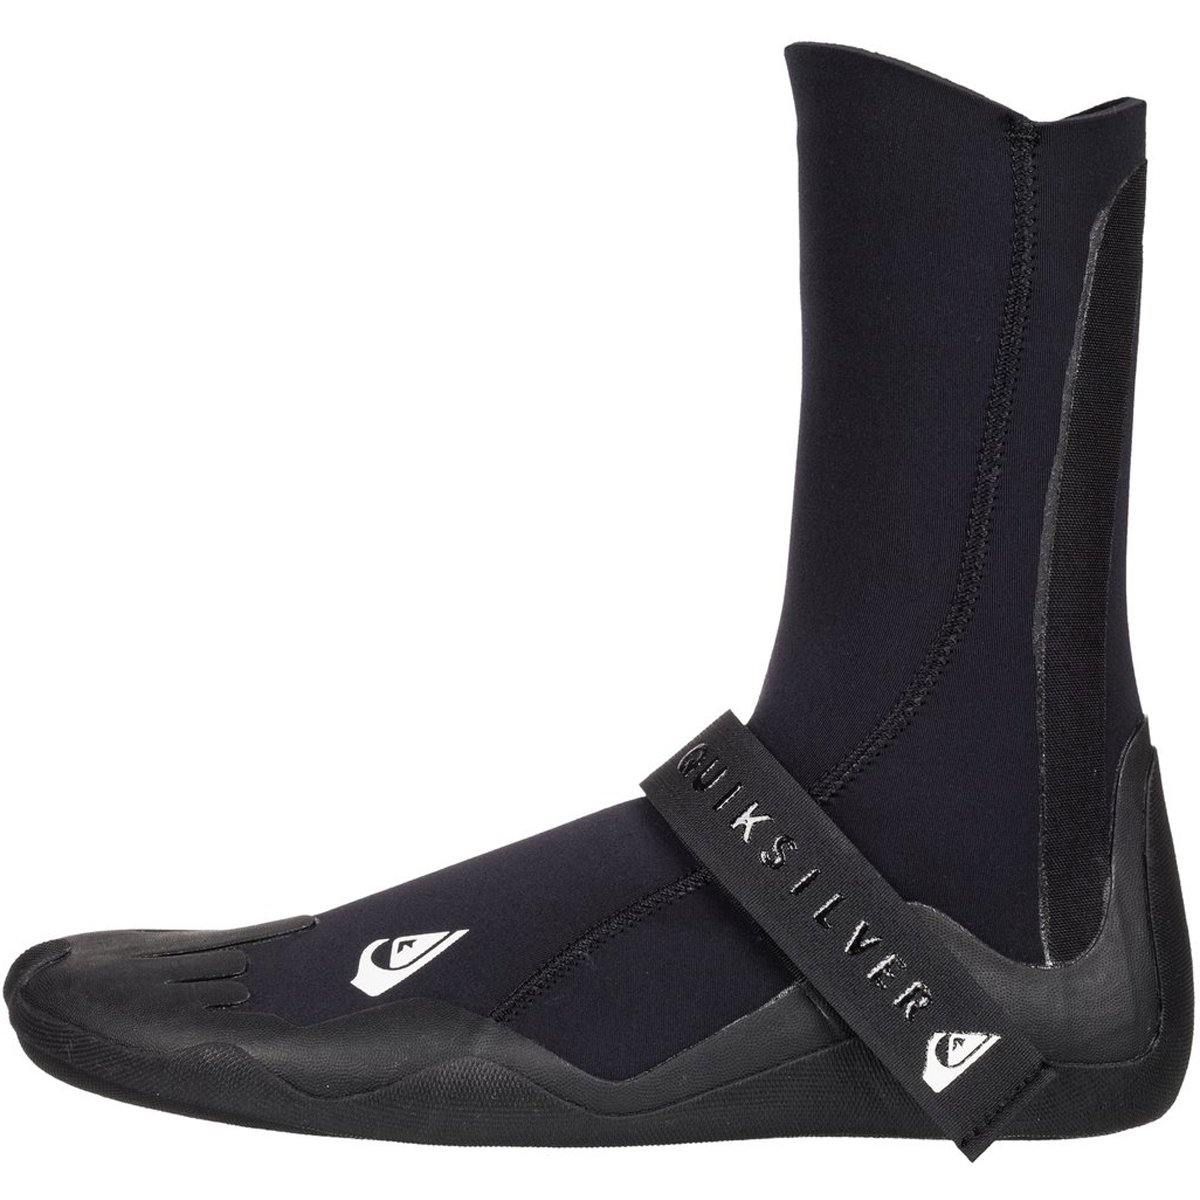 Quiksilver 3mm Syncro Round Toe Men's Watersports Boots - Black / 7 by Quiksilver